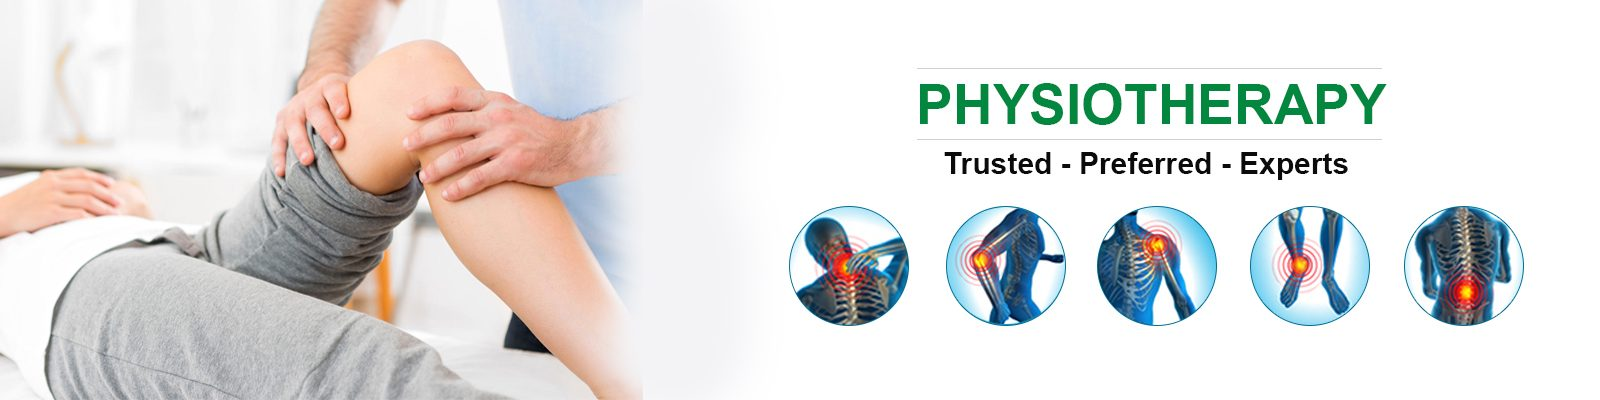 PHYSIOTHERAPY_BANNER